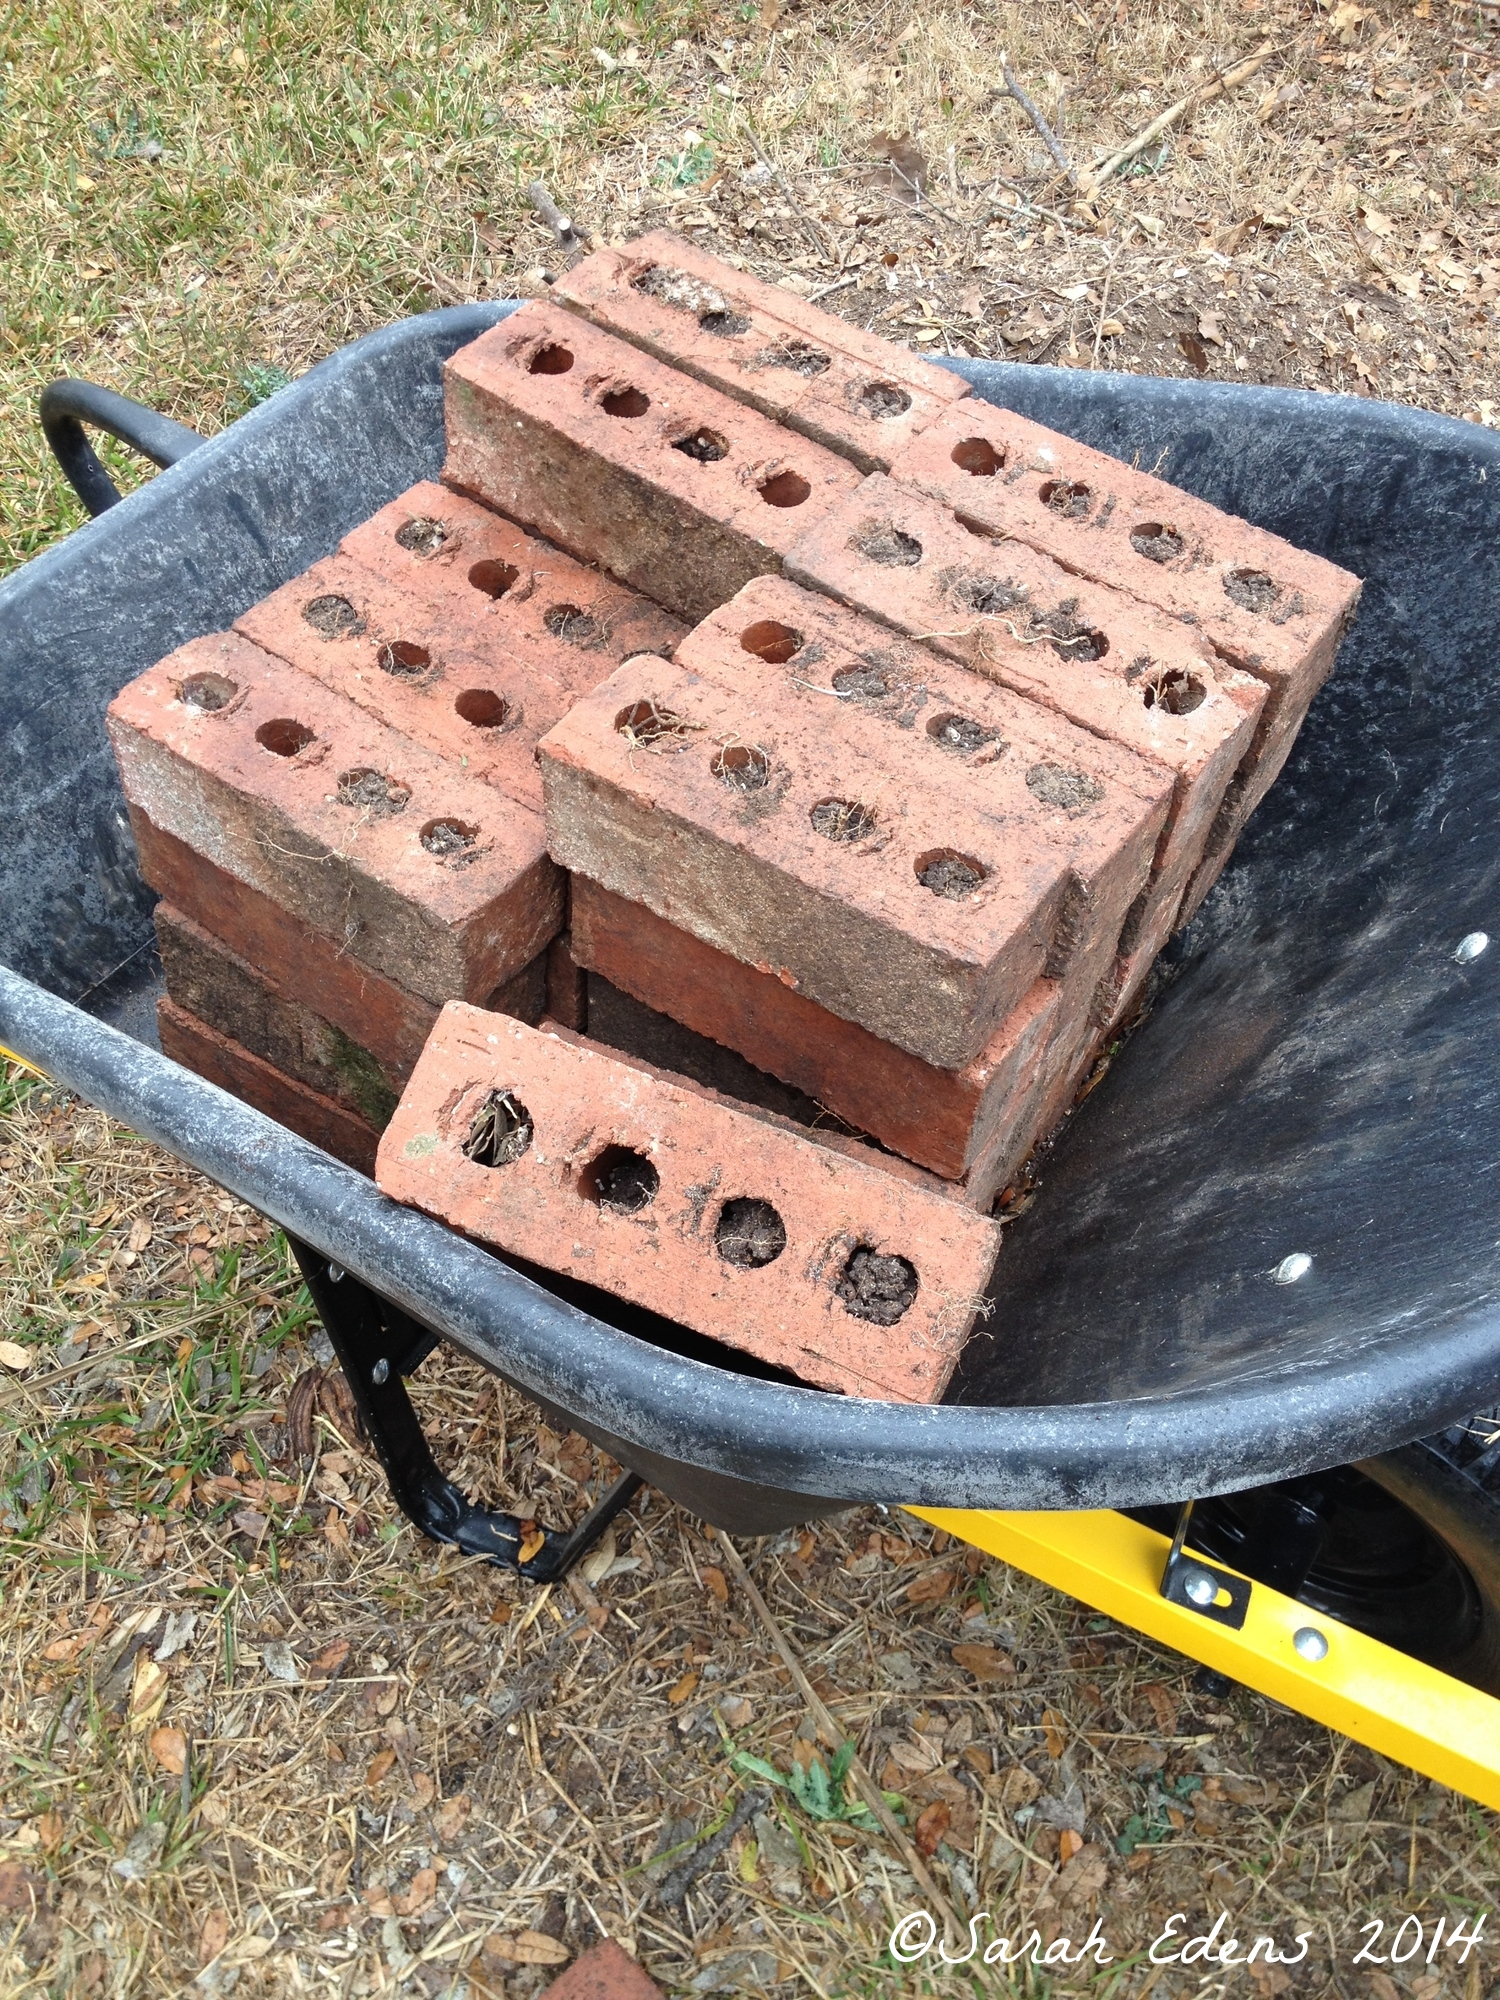 We used leftover bricks from another project